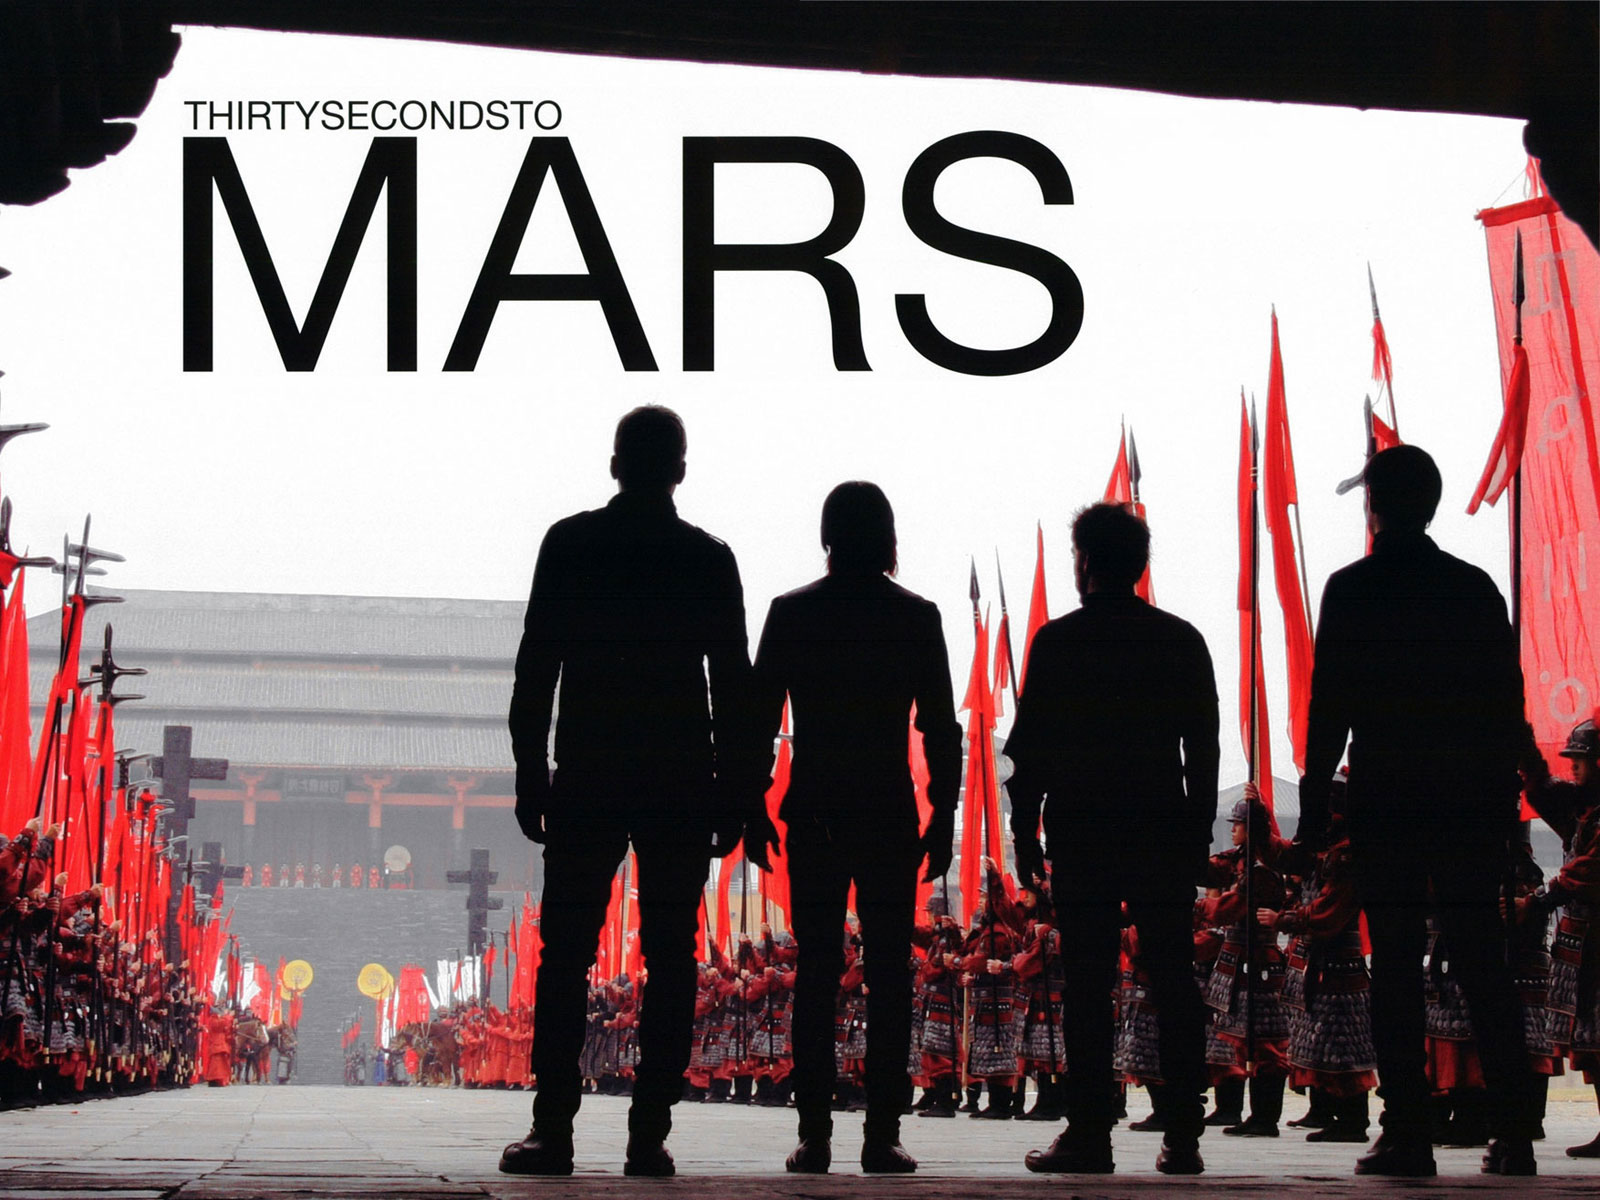 MUSIC AND VINE STREET: ARTICLE THREE: '30 Seconds to Mars ...